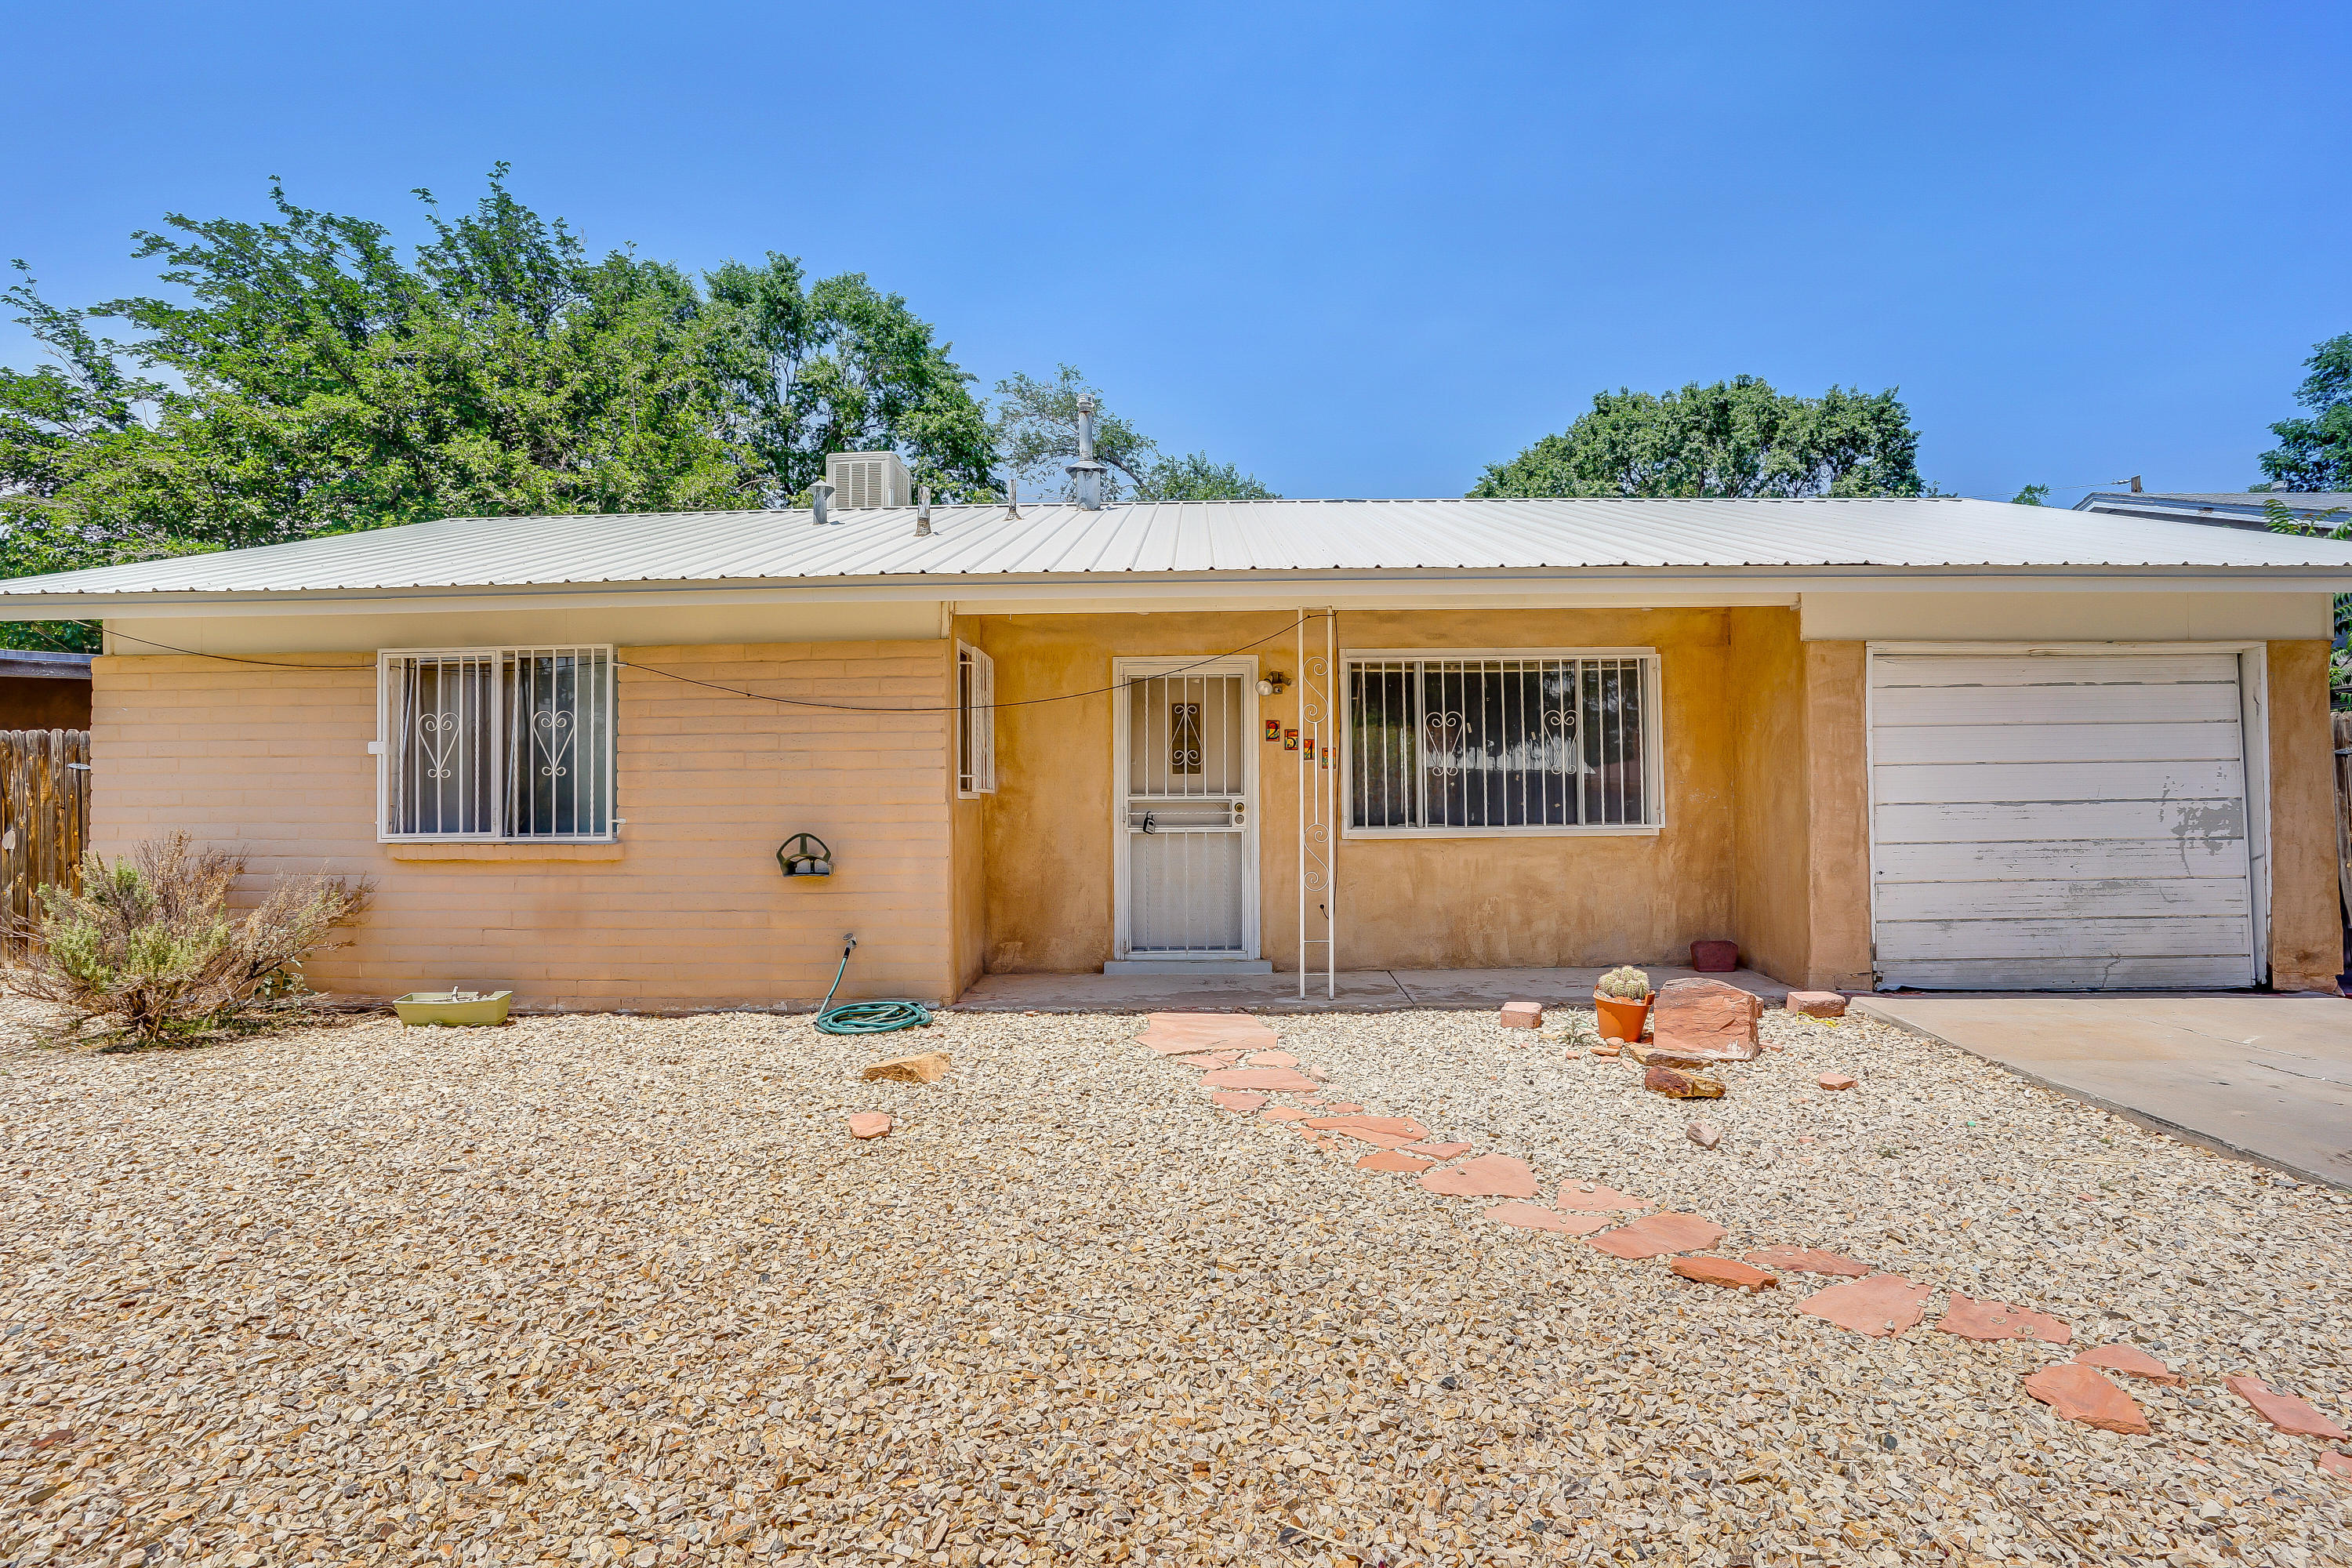 Welcome to this great home in the Valley Gardens neighborhood.  This home features a nice open kitchen & living area as well as 2 nice size bedrooms.  Recent updates in 2020 include new metal roof, furnace and cooler.  Large backyard with mature trees and a nice storage shed too.  Come see this great property today.